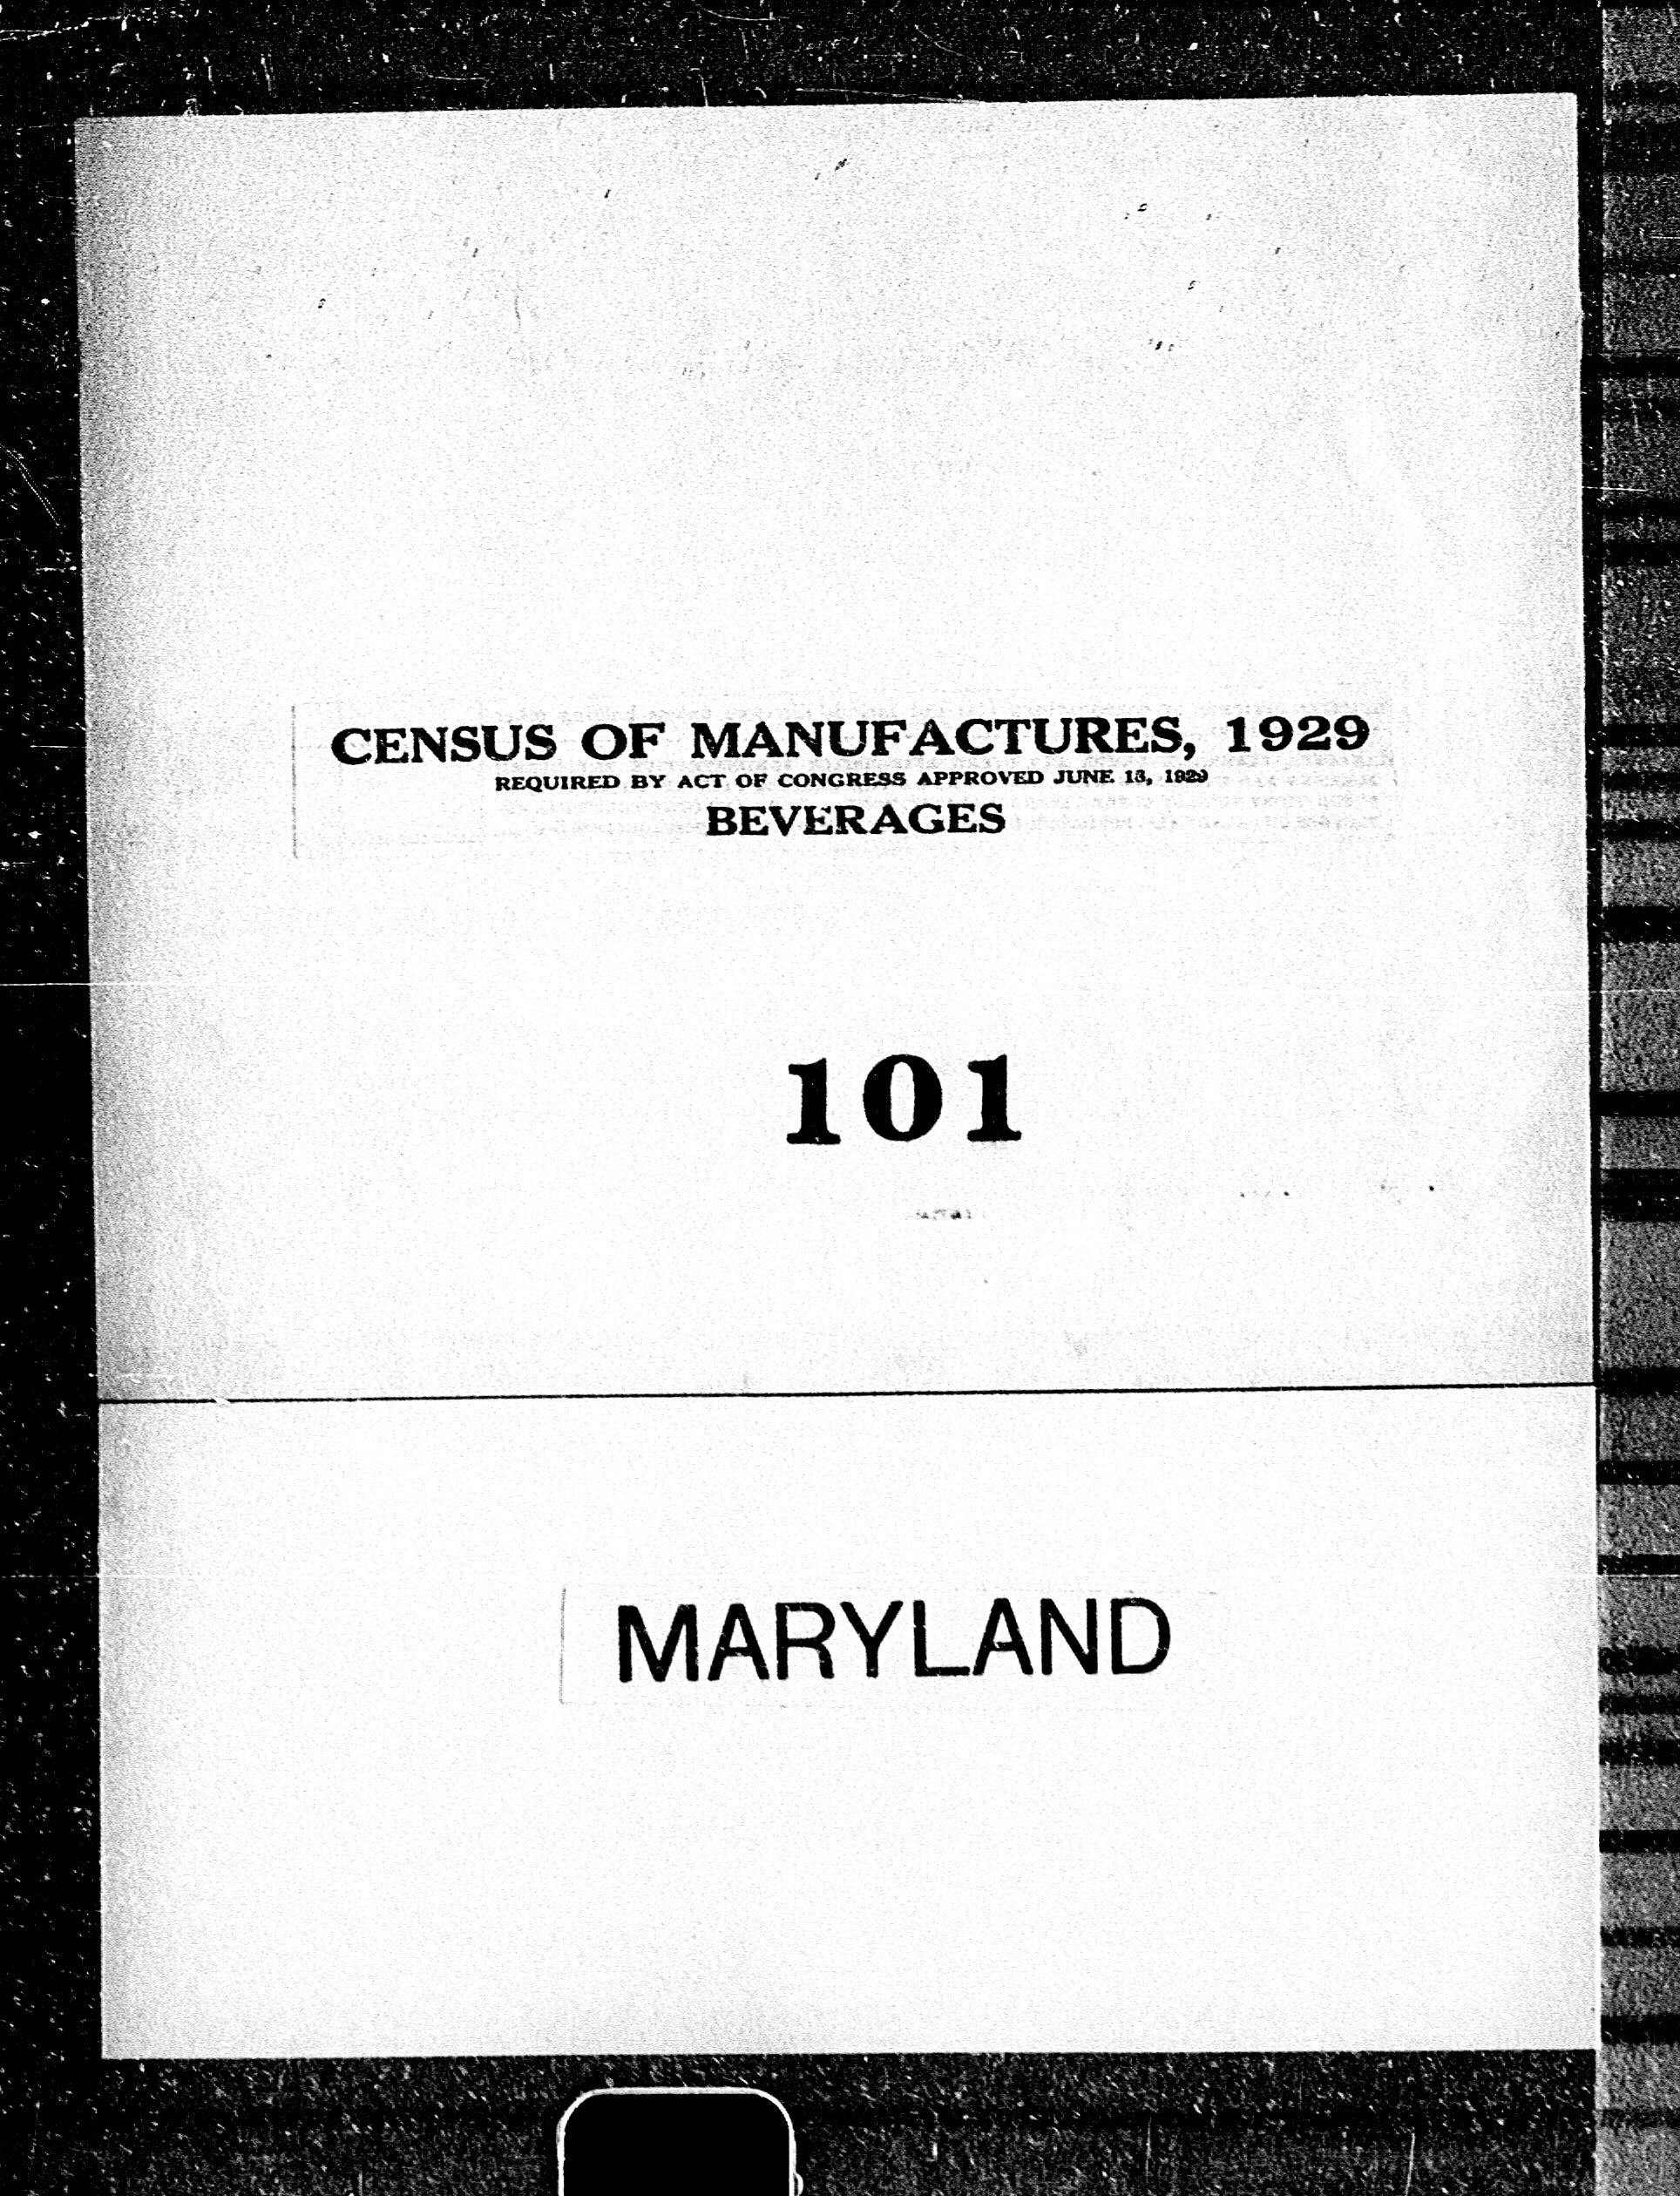 Maryland: Industry No. 101 - Beverages